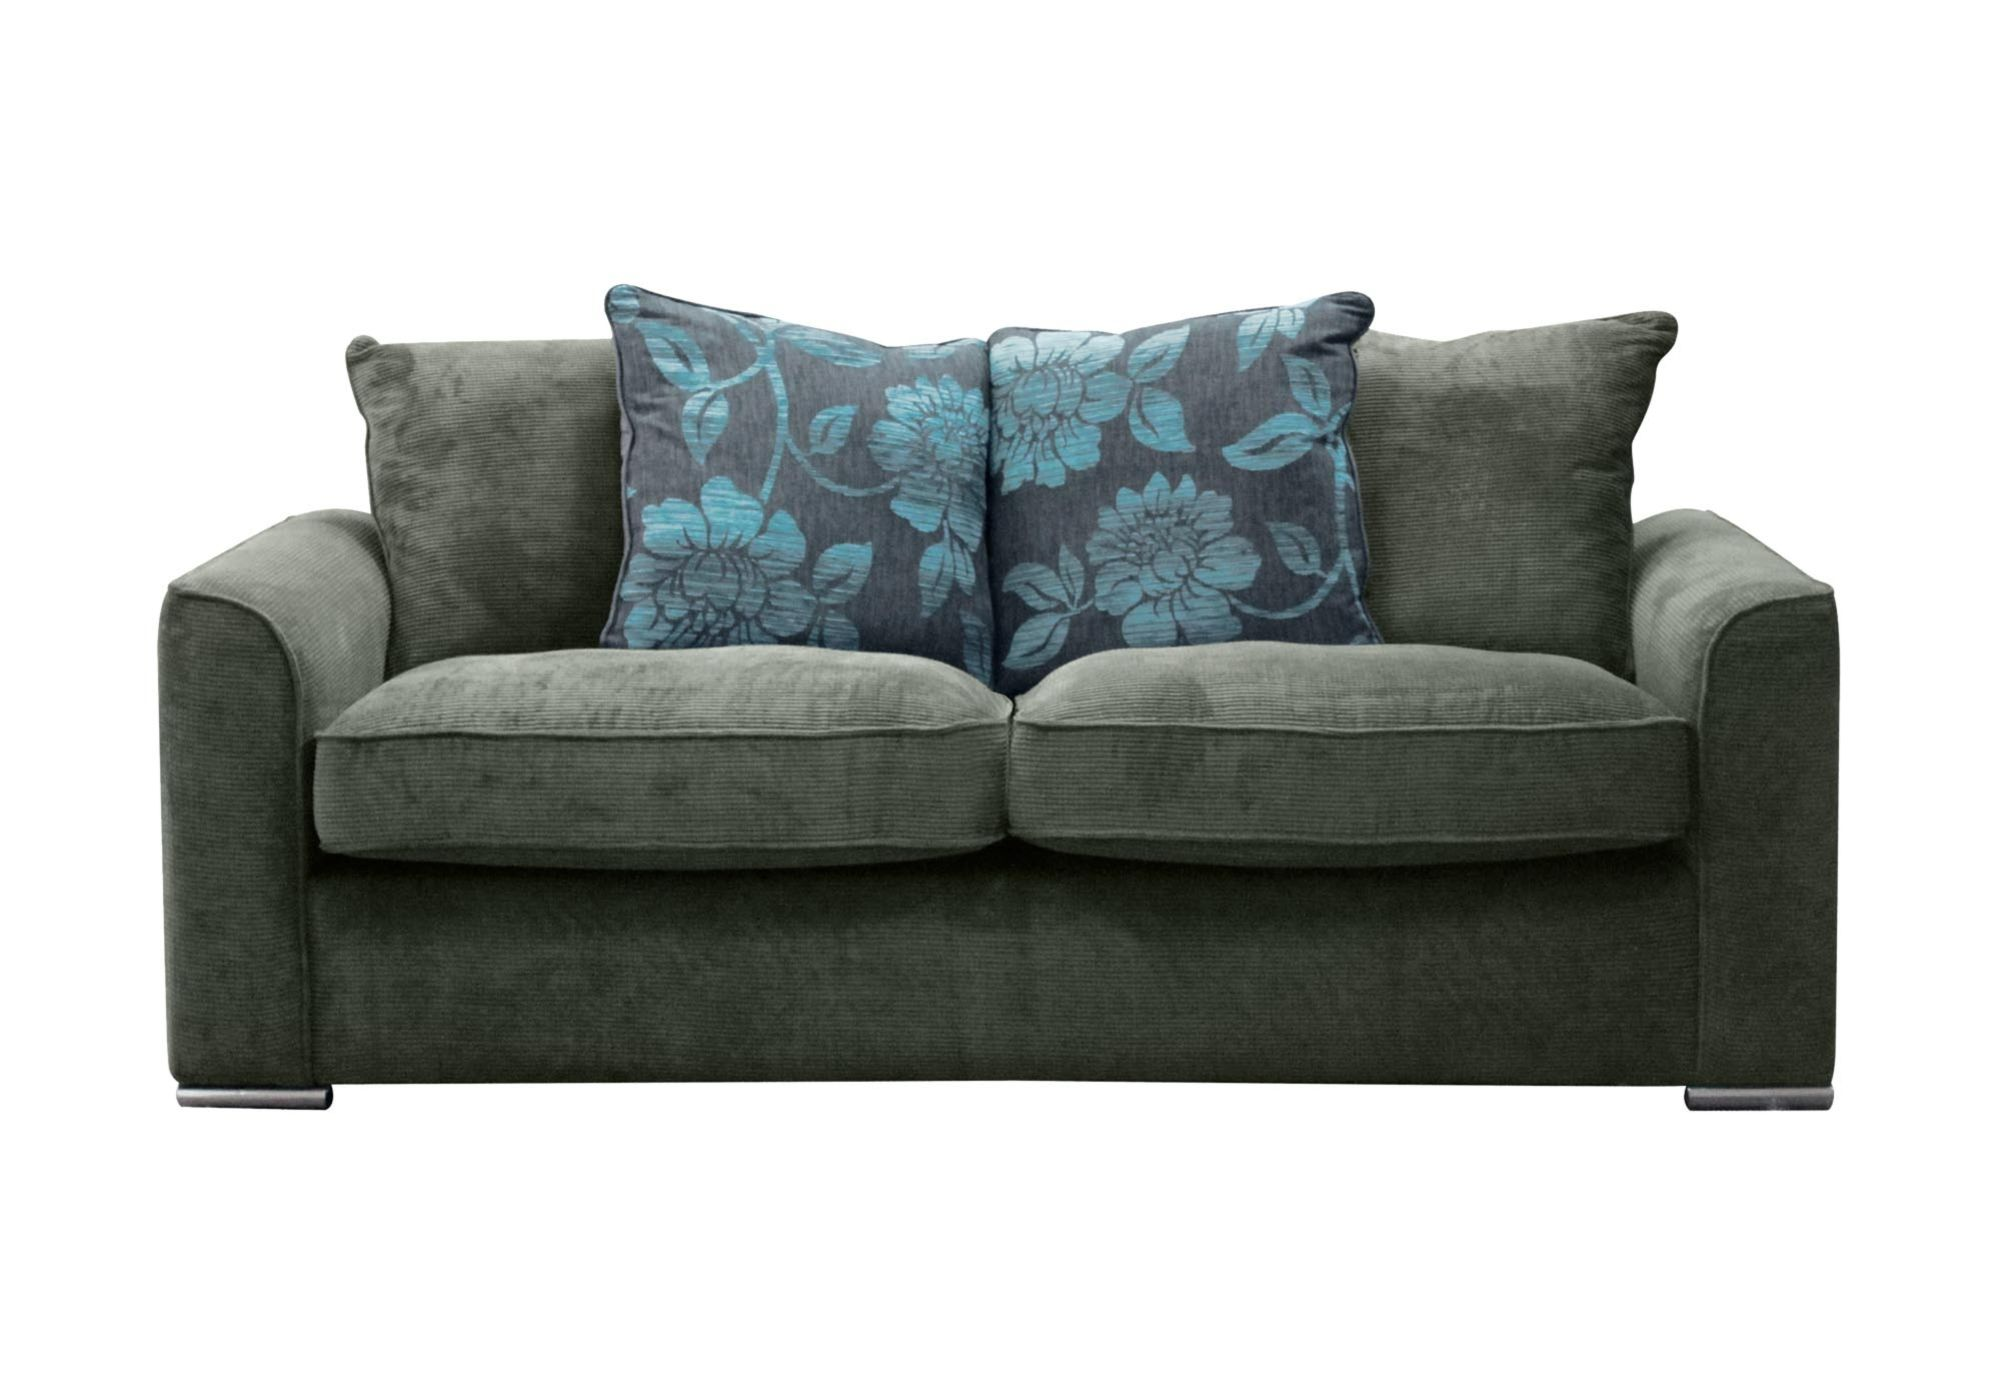 Sofa Beds Subtle floral with the Scatter Back Sofa from Buoyant